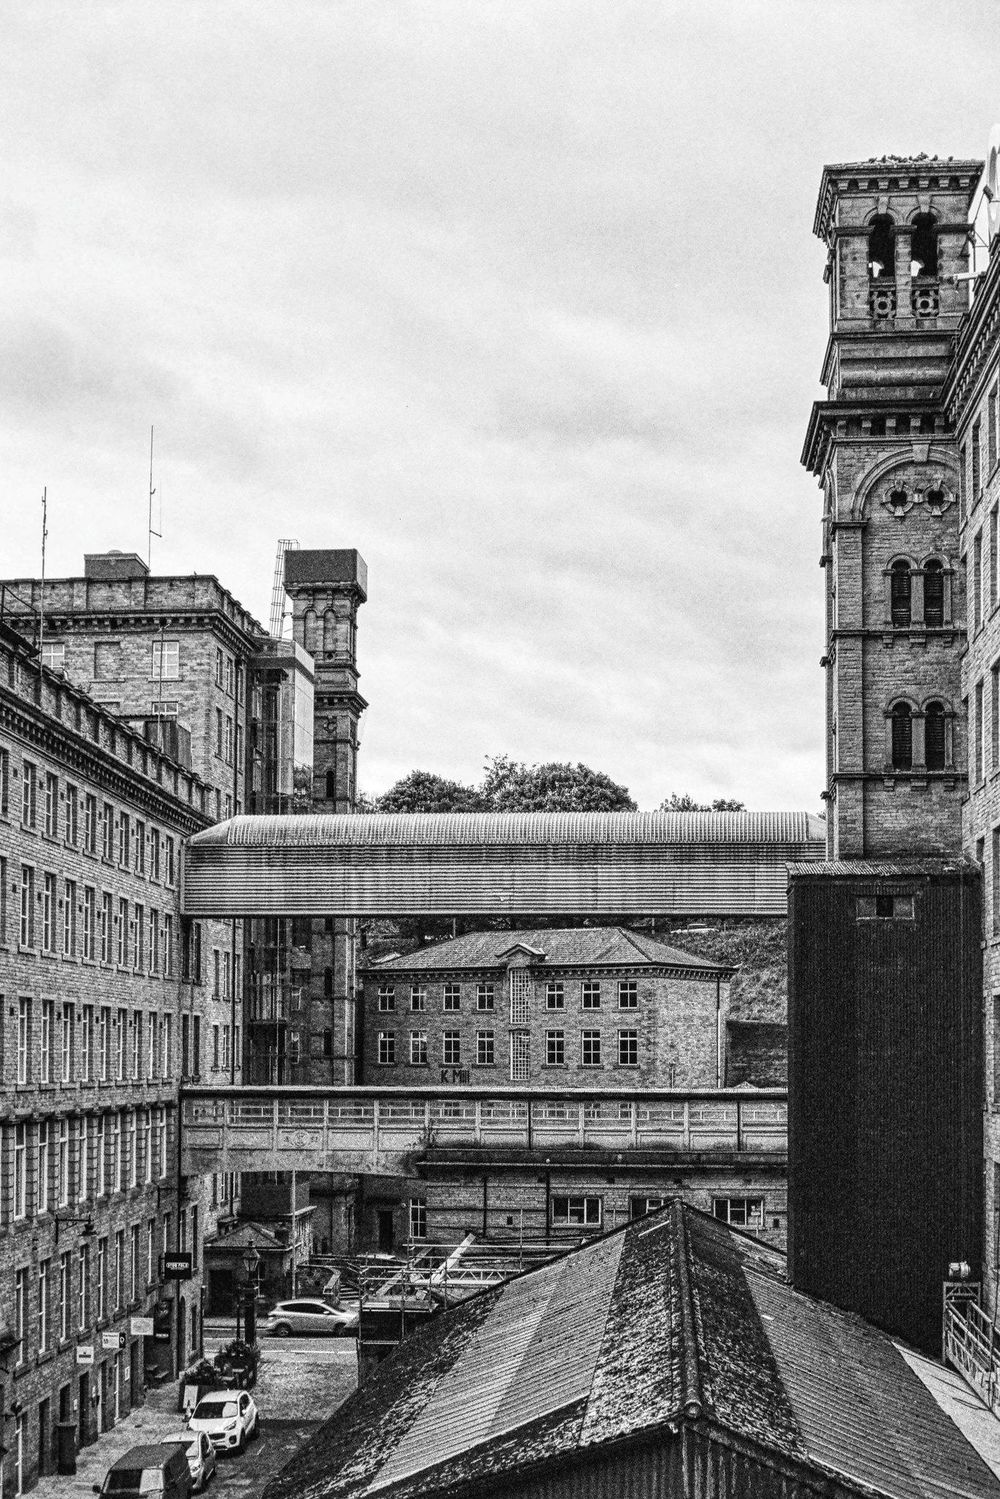 dean clough mill - image 3 - student project